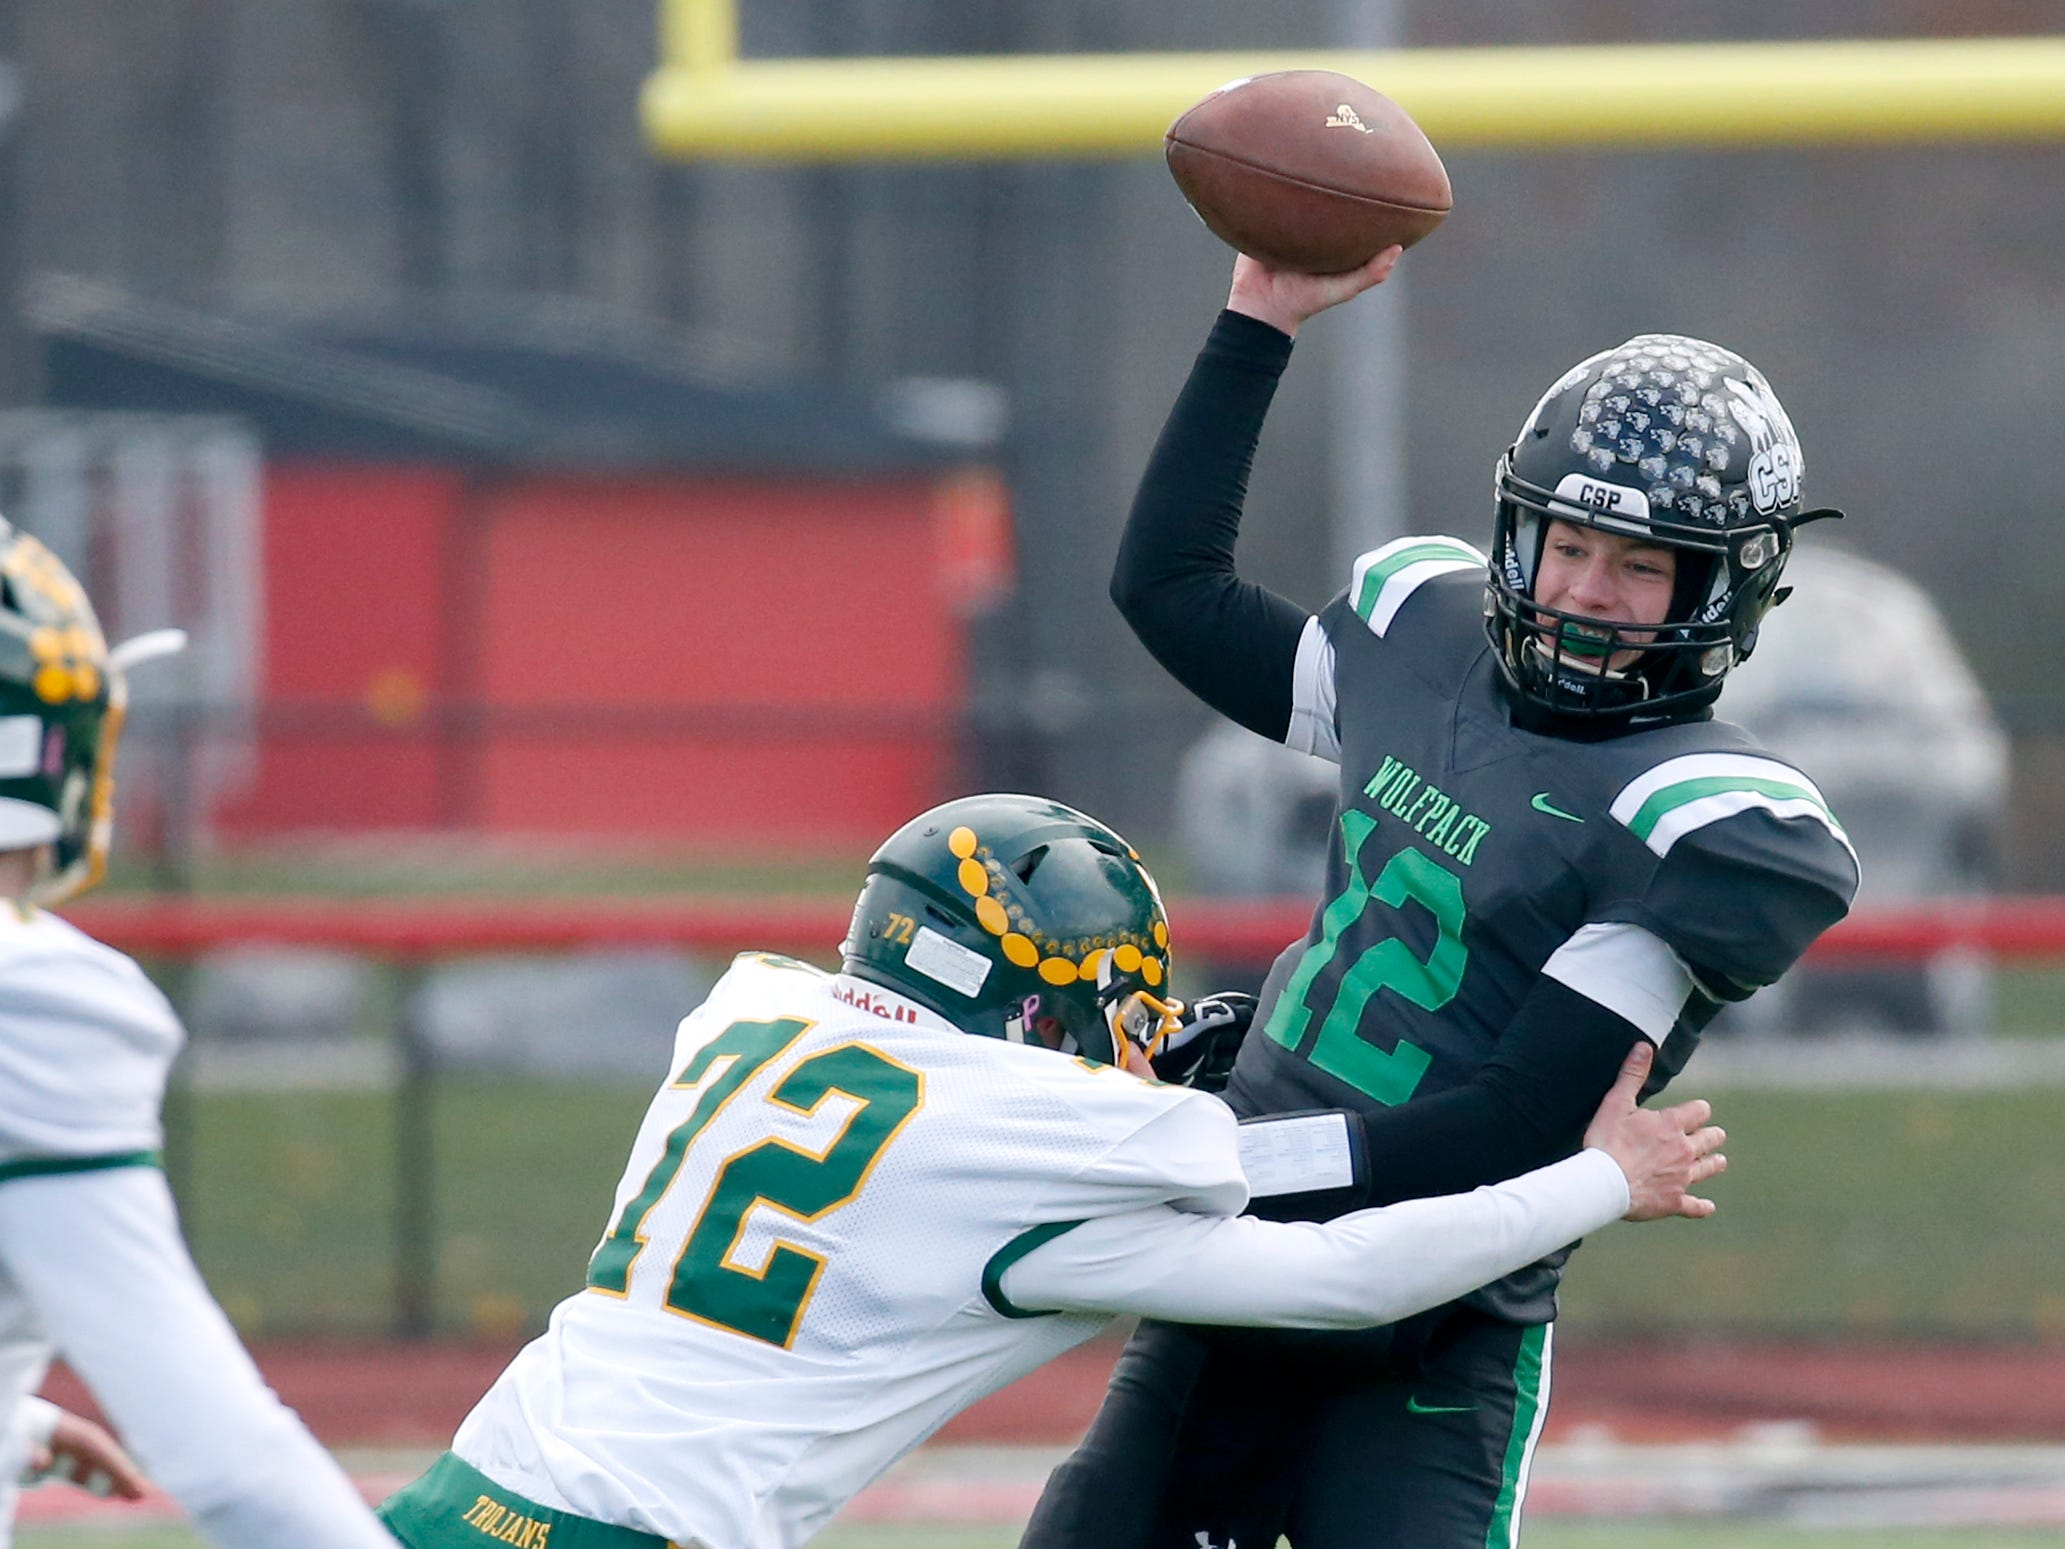 Alexander's Joshua Kelsey tackles Clymer-Sherman-Panama's Gerrit Hinsdale before he can throw in the first quarter at Clarence High School.